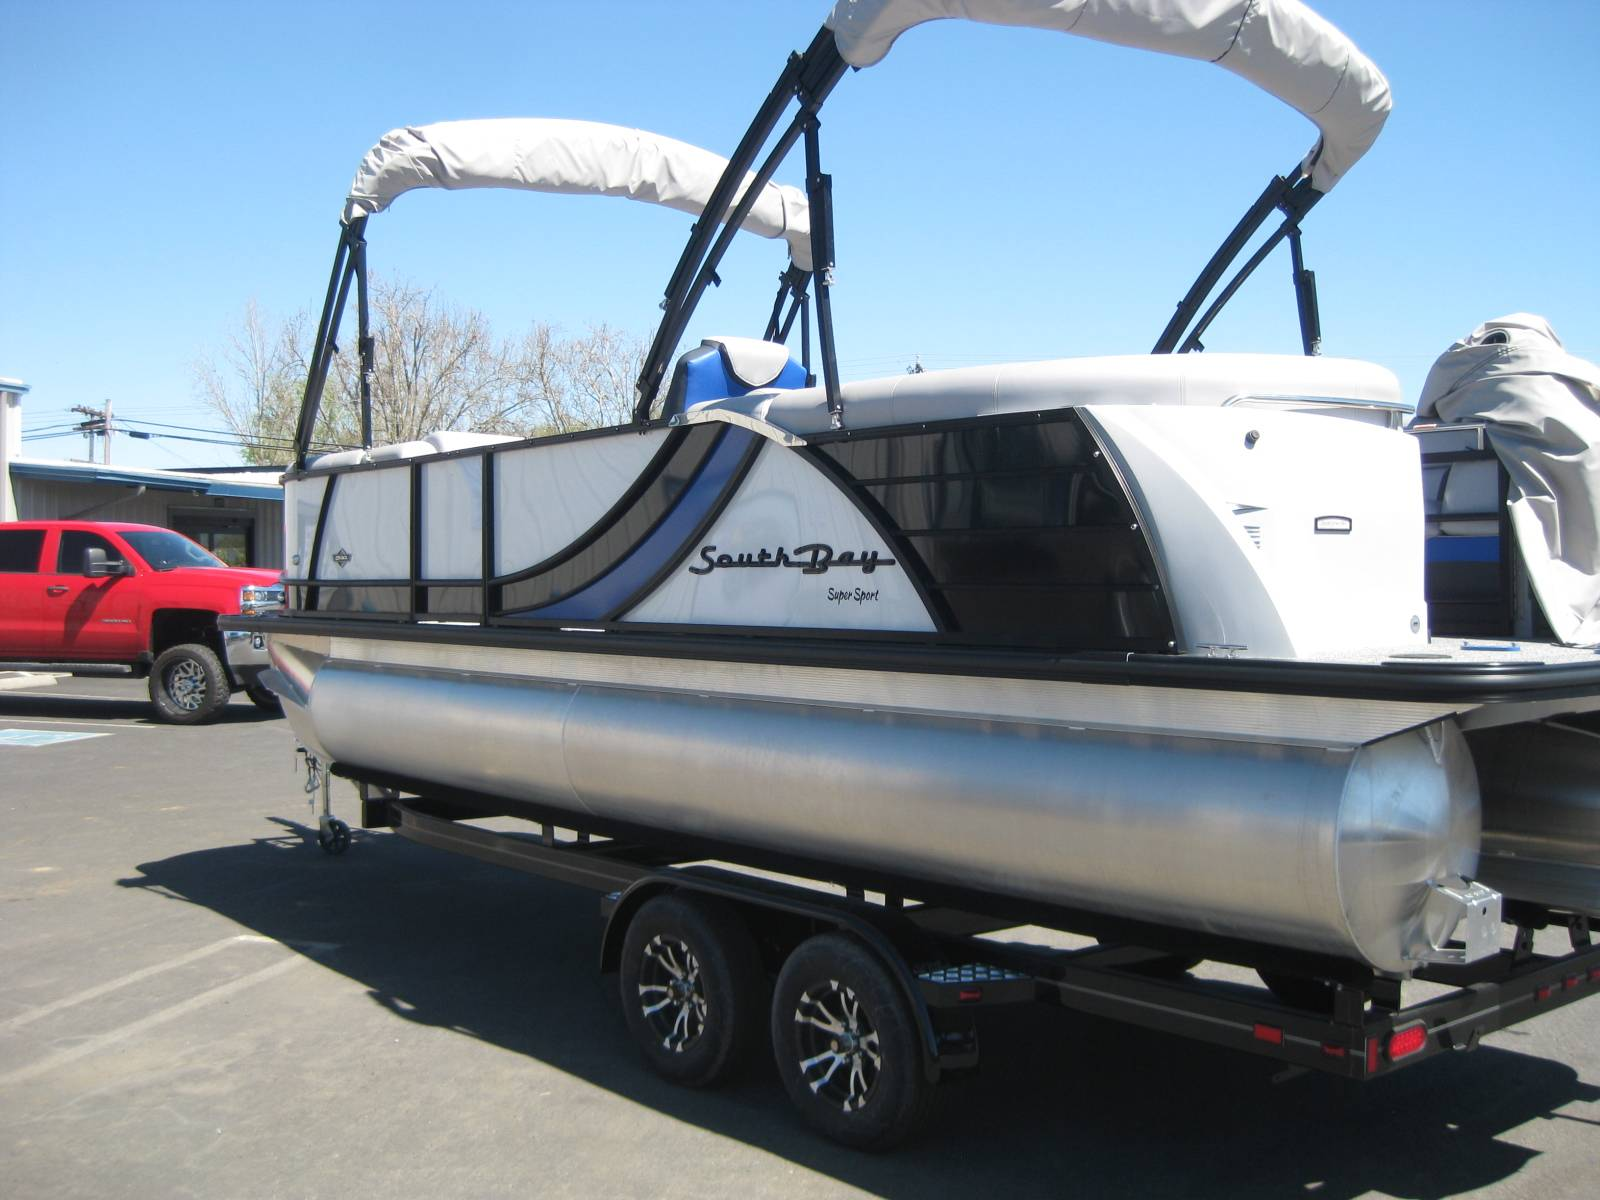 2019 South Bay 523 RS 3.0 in Lakeport, California - Photo 6